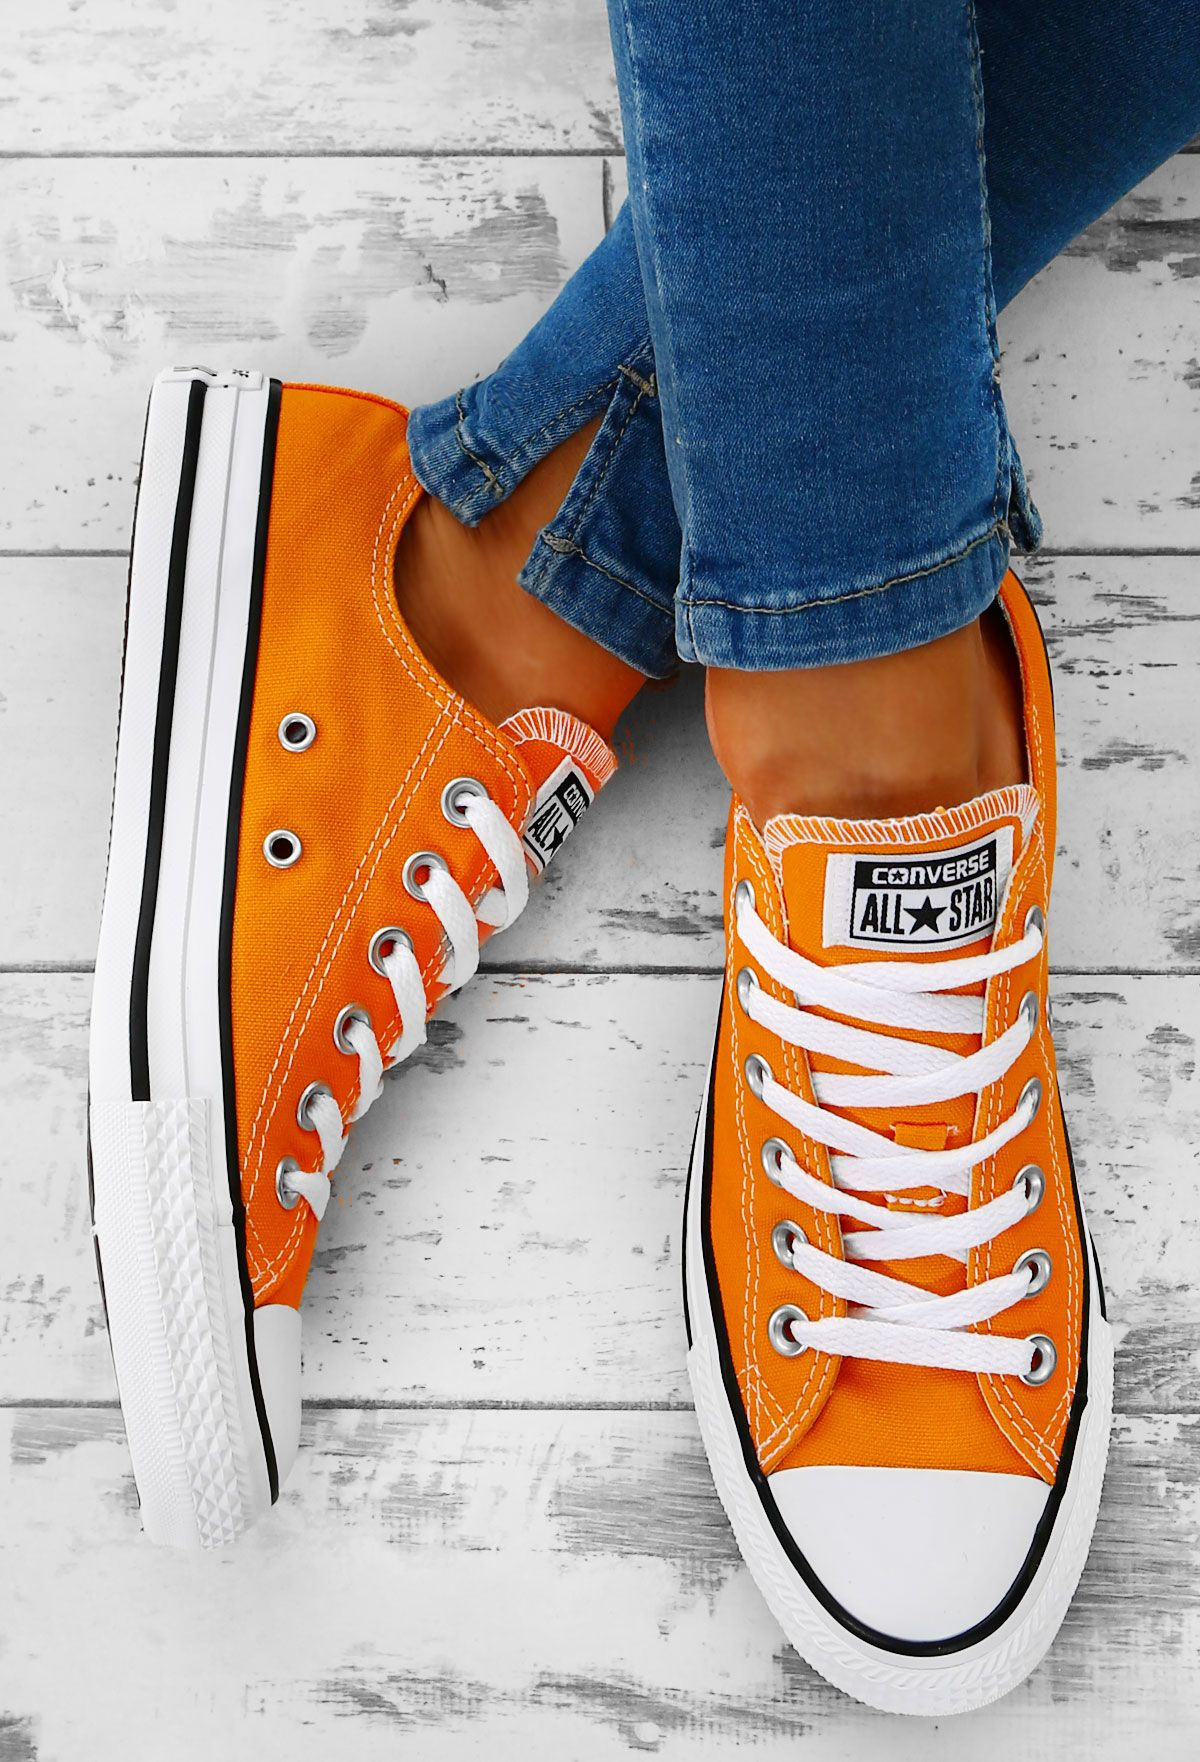 0d18d9df4f2e3f Style it up for summer in these gorge orange Converse trainers! These  orange Chuck Taylors